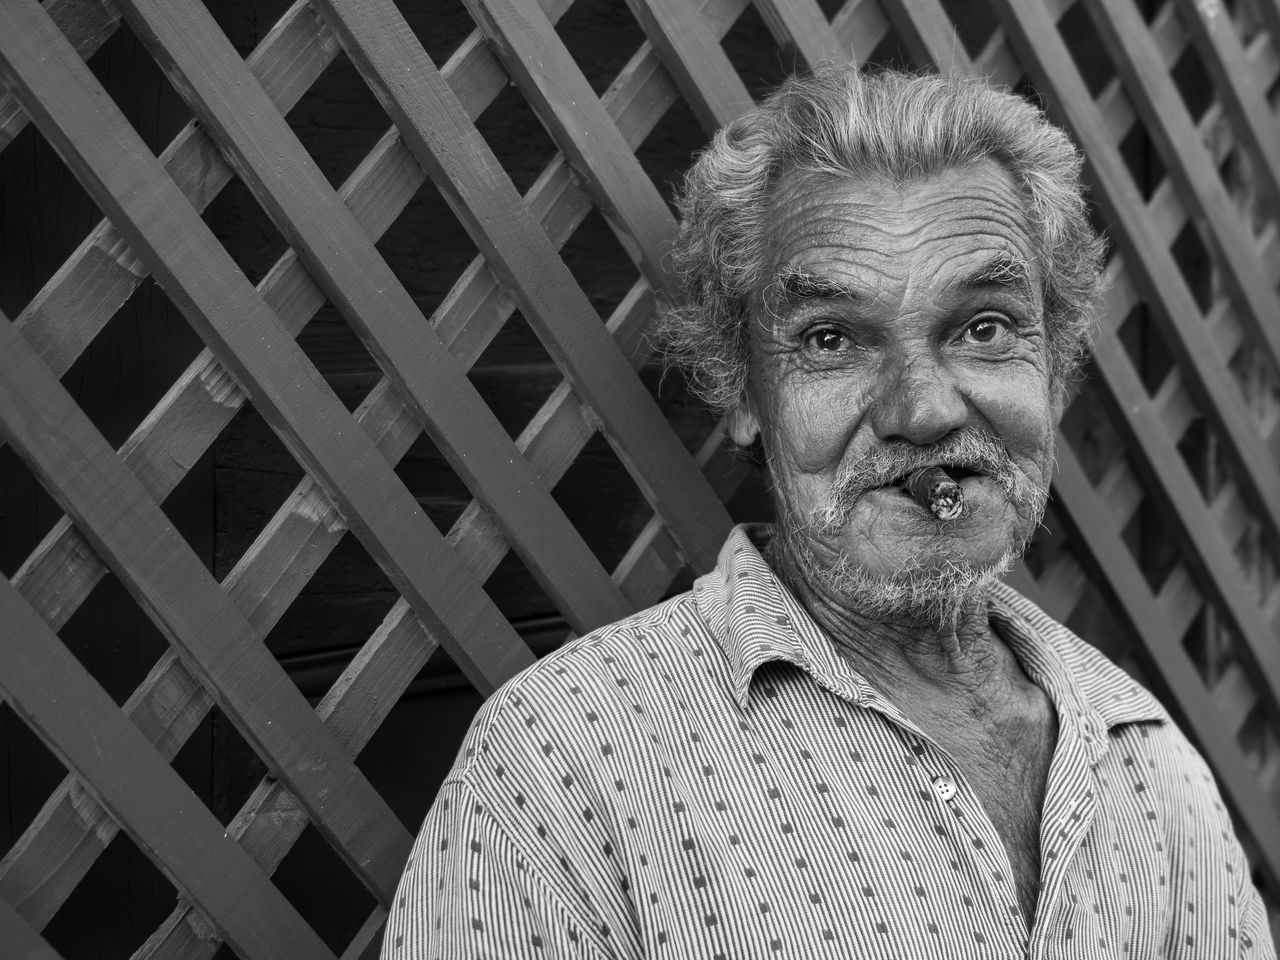 After making his acquaintance, this gentleman was more than willing to pose for my camera. Adult Adults Only Black And White Cigar Close-up Cuba Day EyeEm Best Shots Father's Day Gray Hair Headshot Looking At Camera One Man Only One Person One Senior Man Only Only Men Outdoors People Portrait Real People Retired Senior Adult Smoking The Portraitist - 2017 EyeEm Awards Trinidad